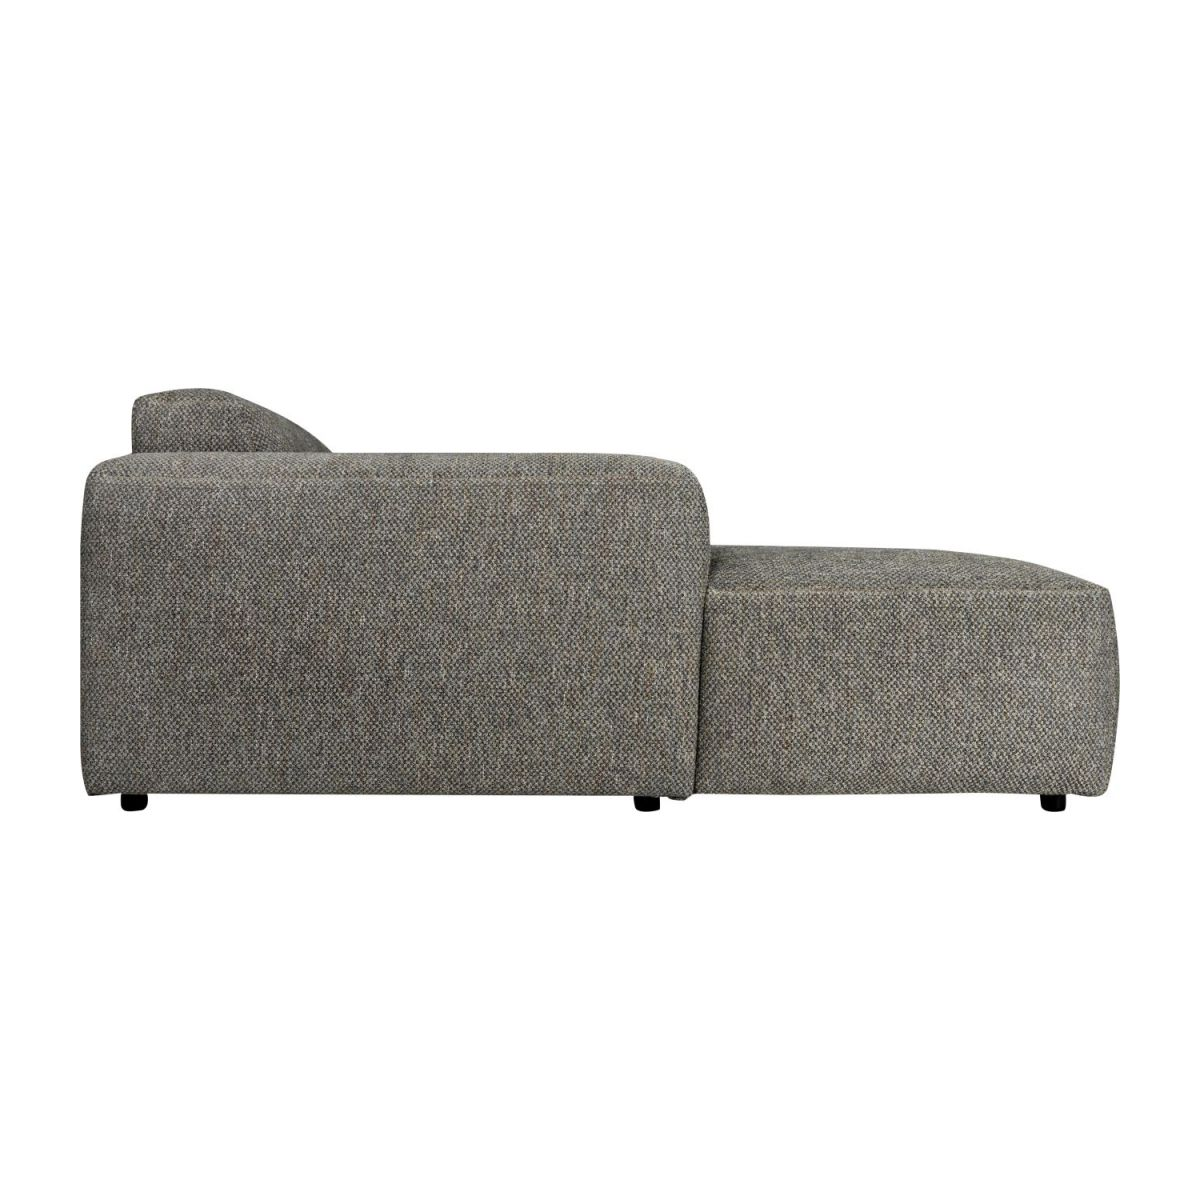 Sofá 3 plazas con chaiselongue izquierda de tela Bellagio night black n°6